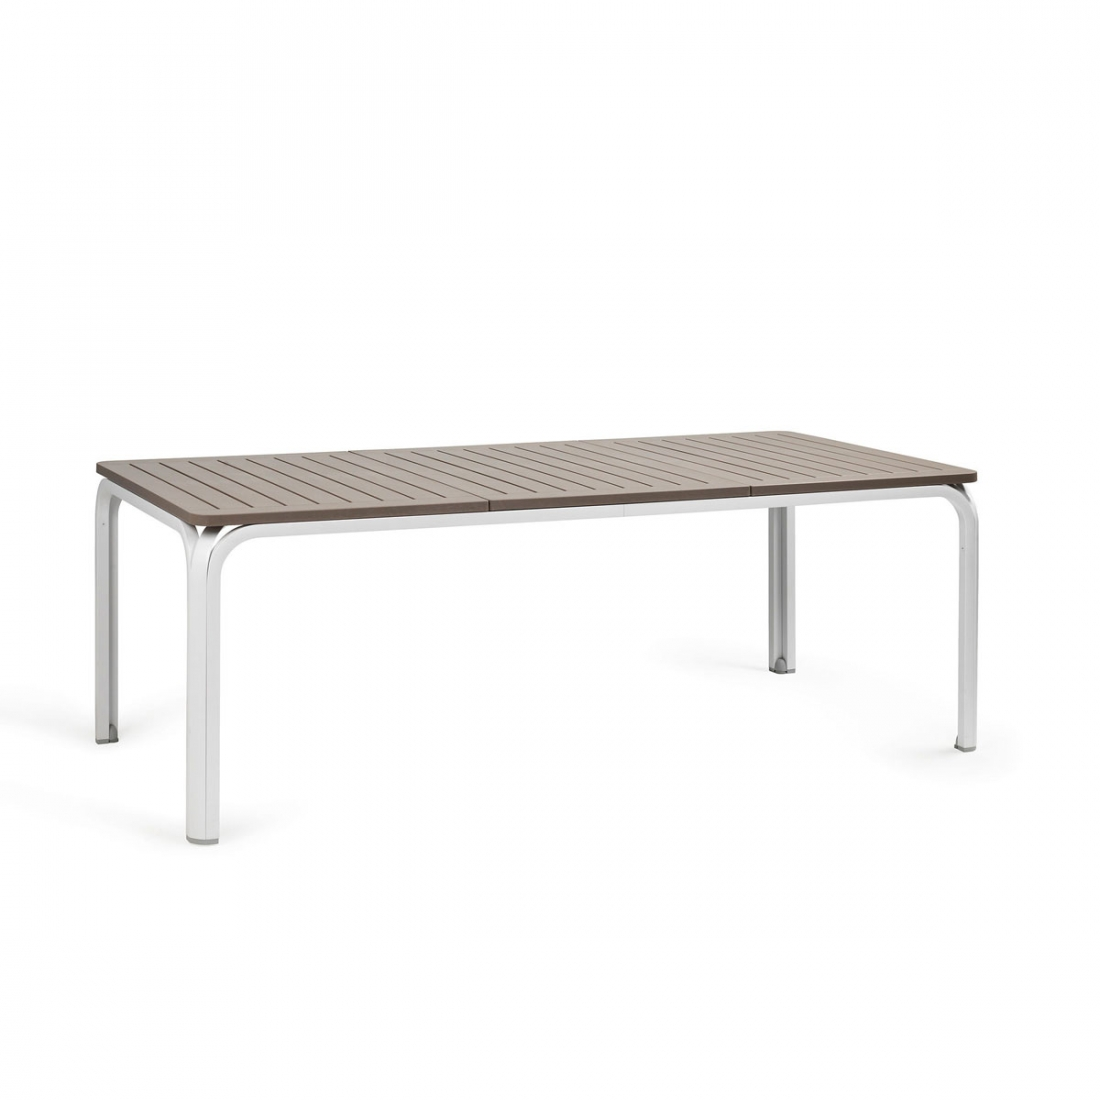 Table Extensible Nardi Alloro 210 280 Cm